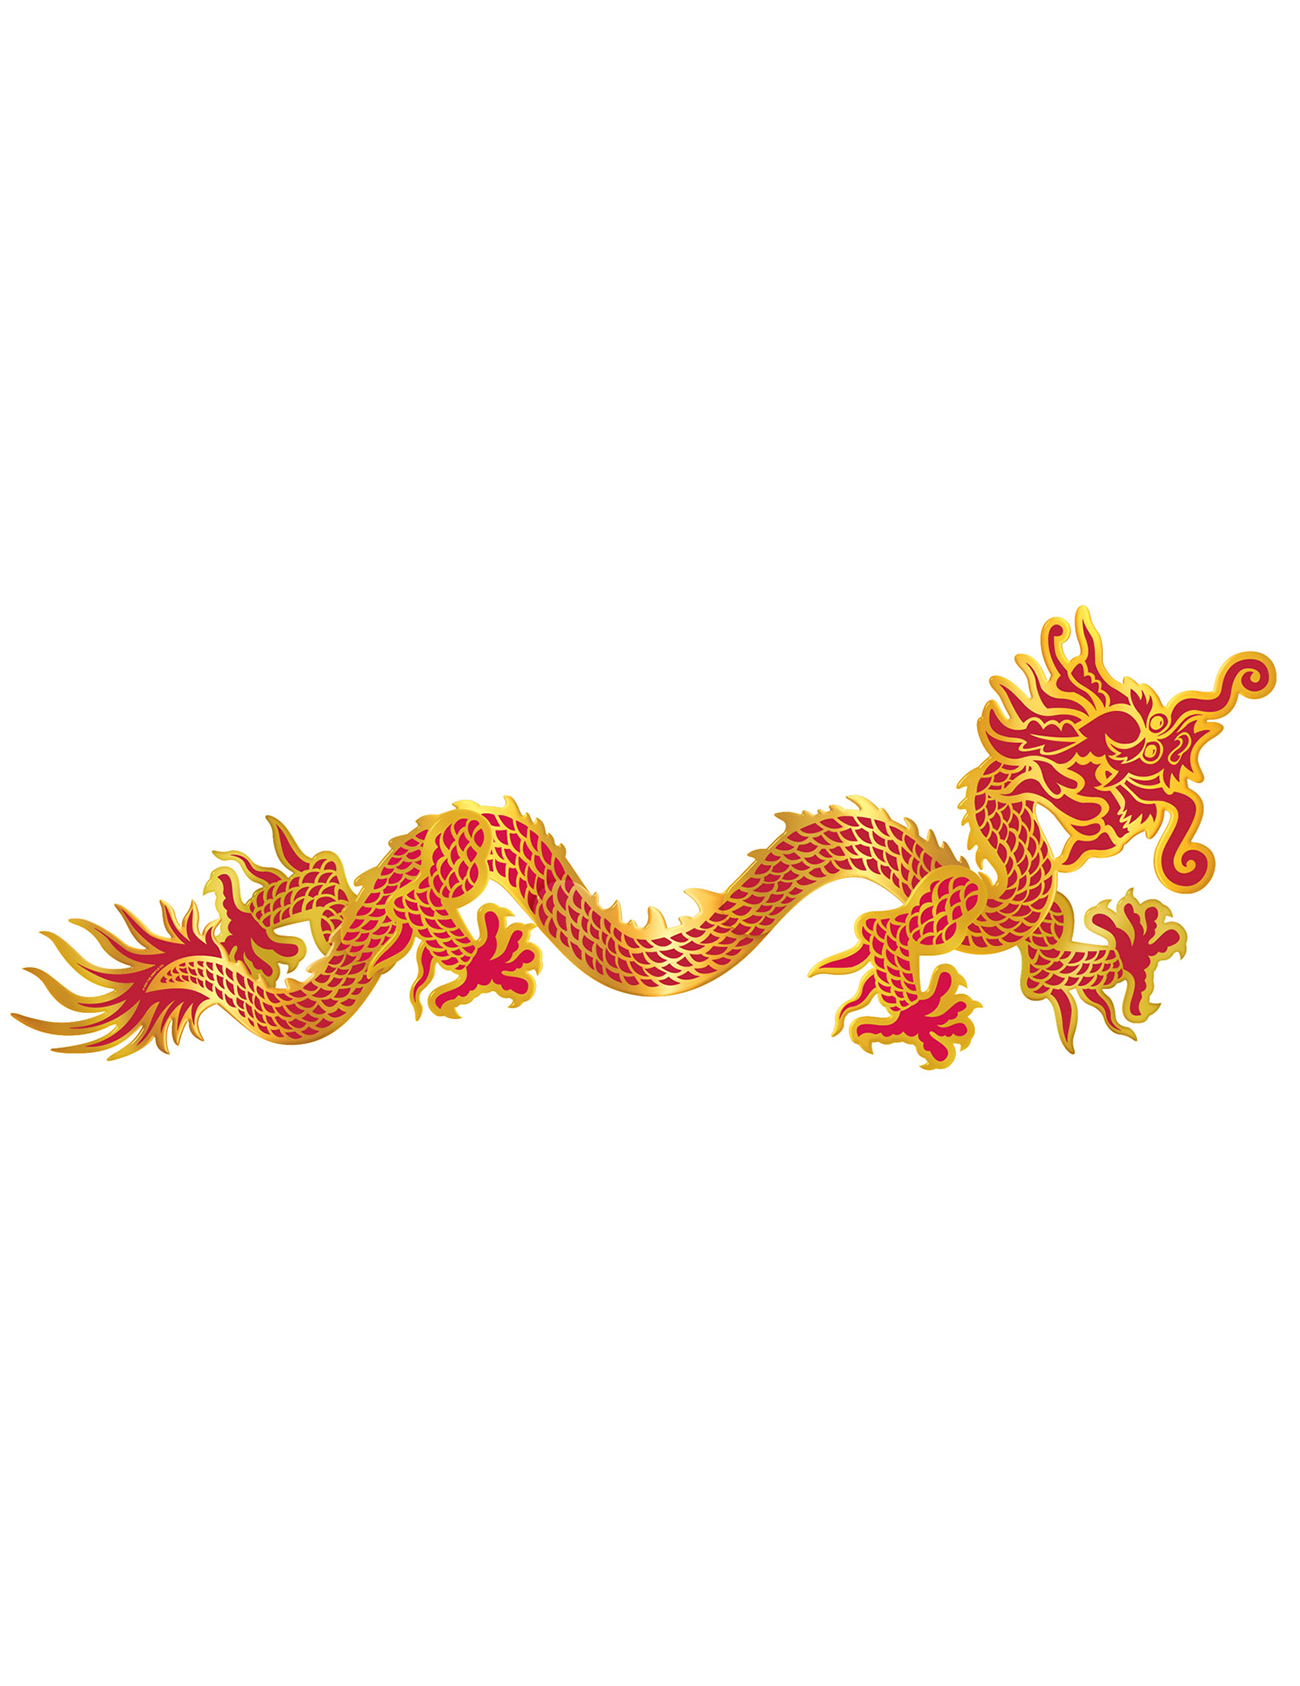 D coration murale dragon rouge et or nouvel an chinois d coration anniversai - Decoration nouvel an ...